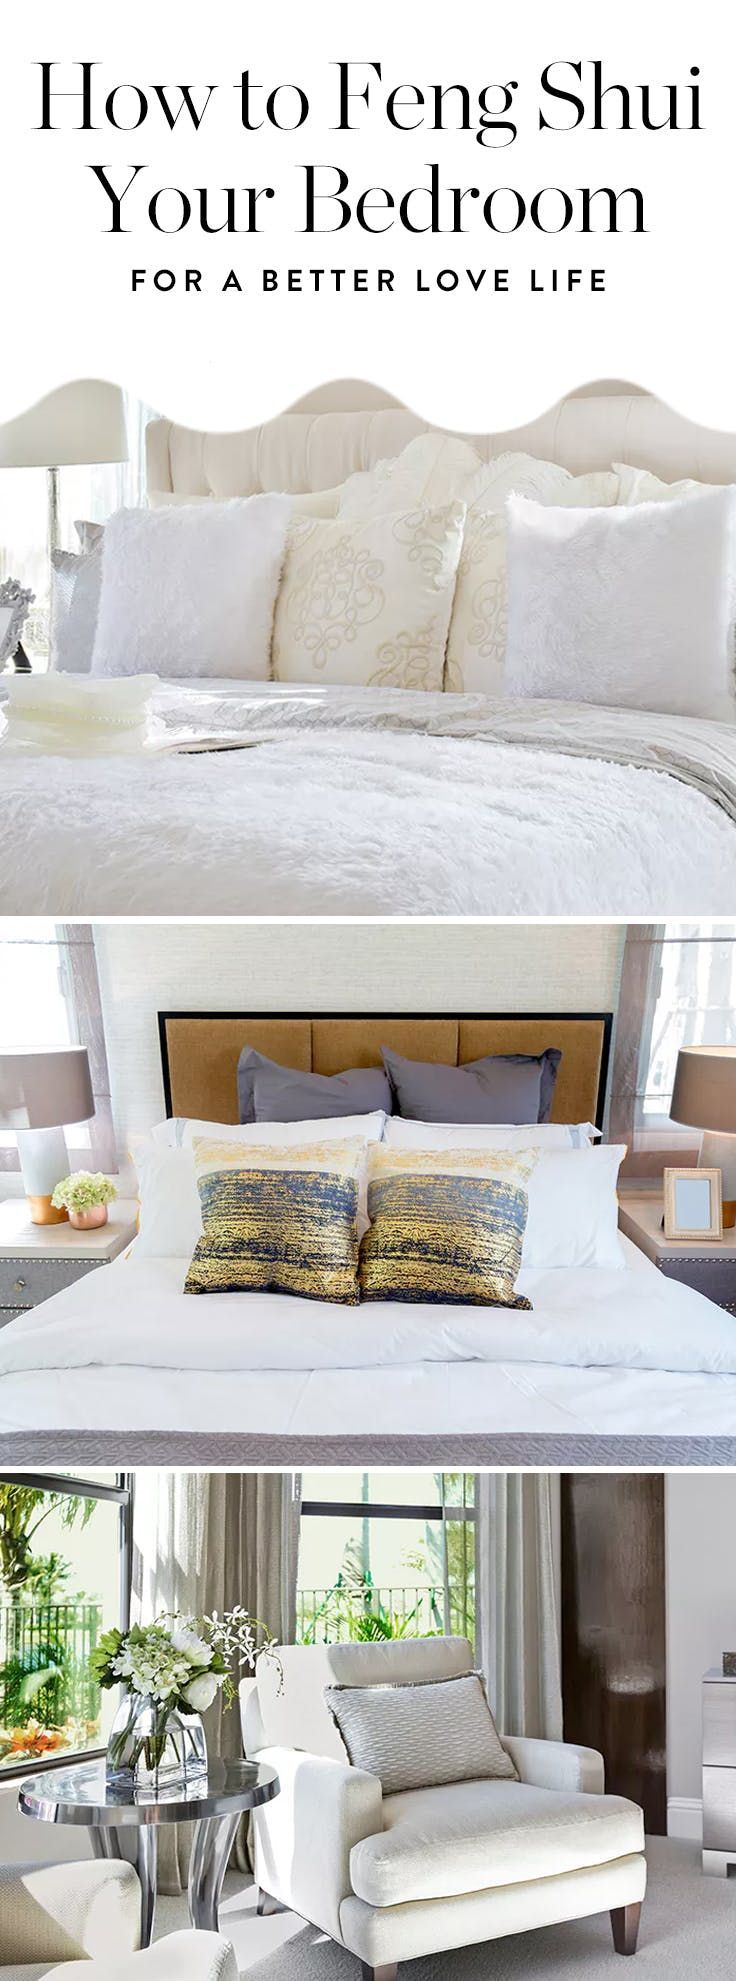 how to feng shui your bedroom for a better love life